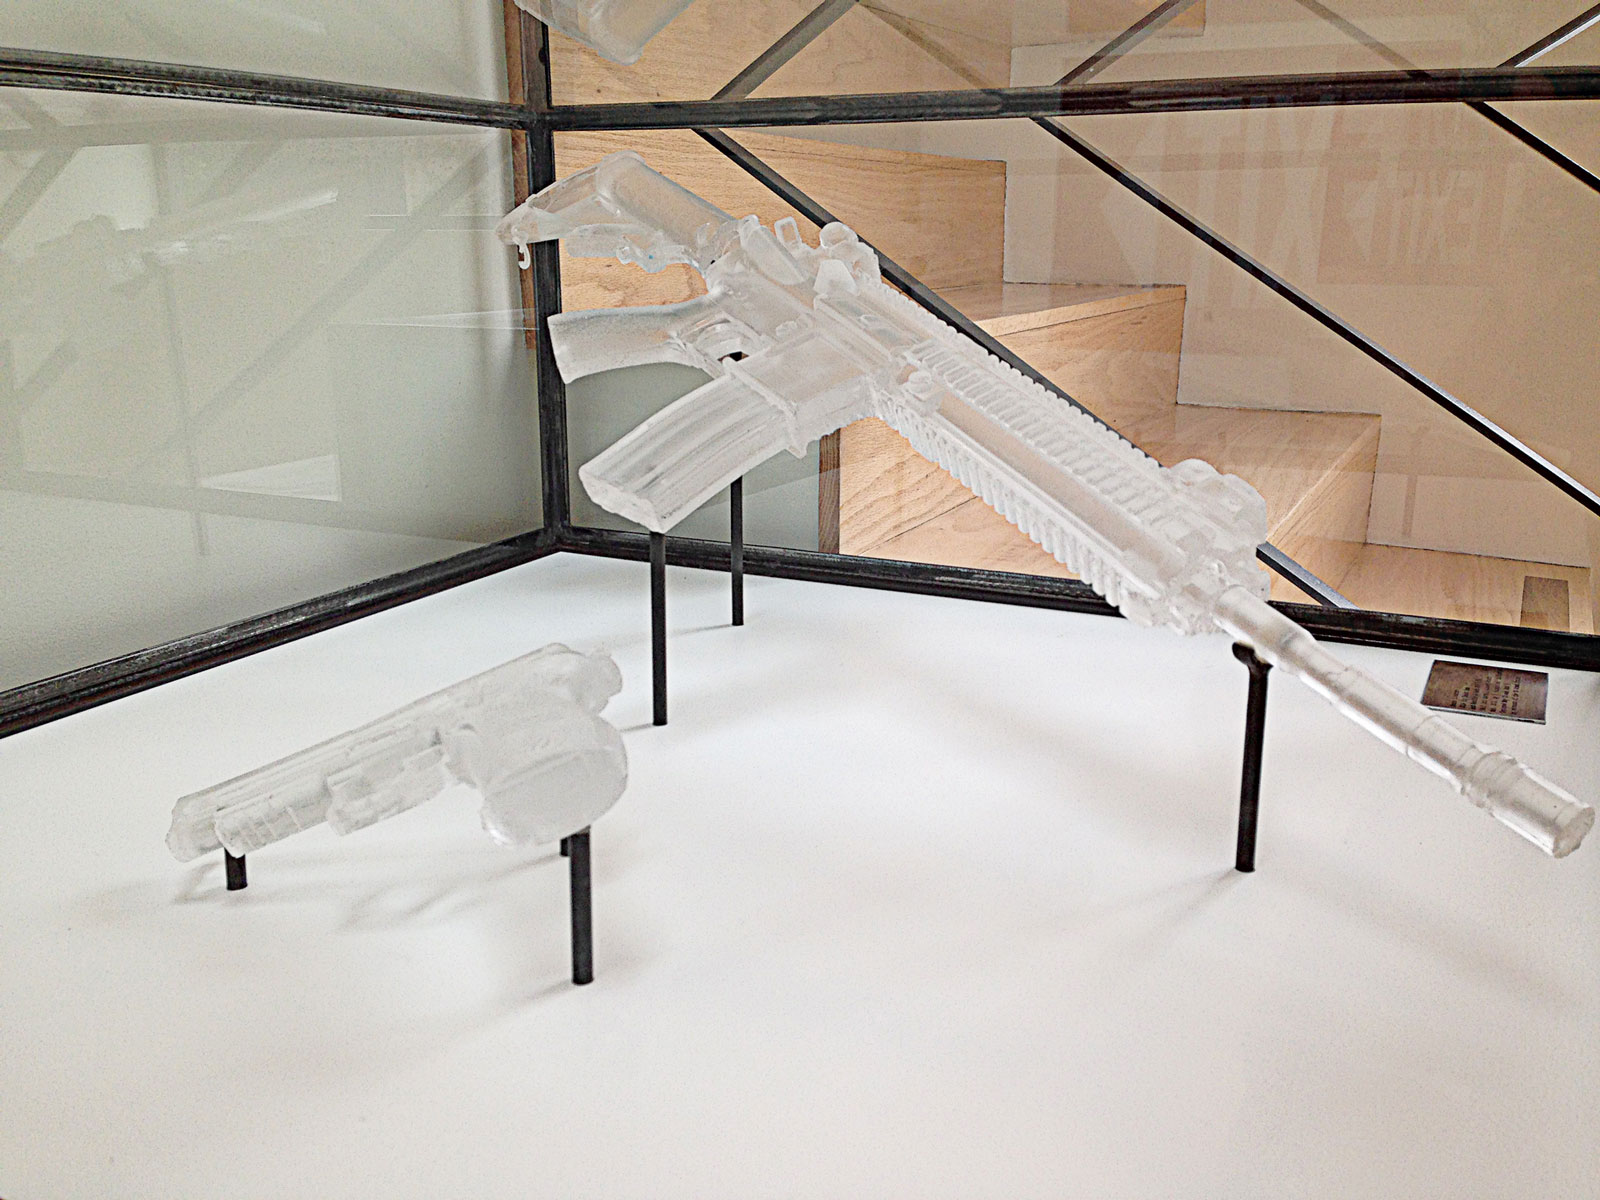 <i>Combat Negatives: P226 Sig Sauer and H&K416</i> (2013). Display case 14˝ × 32˝ × 32˝, sculptural negatives made from cast resin.